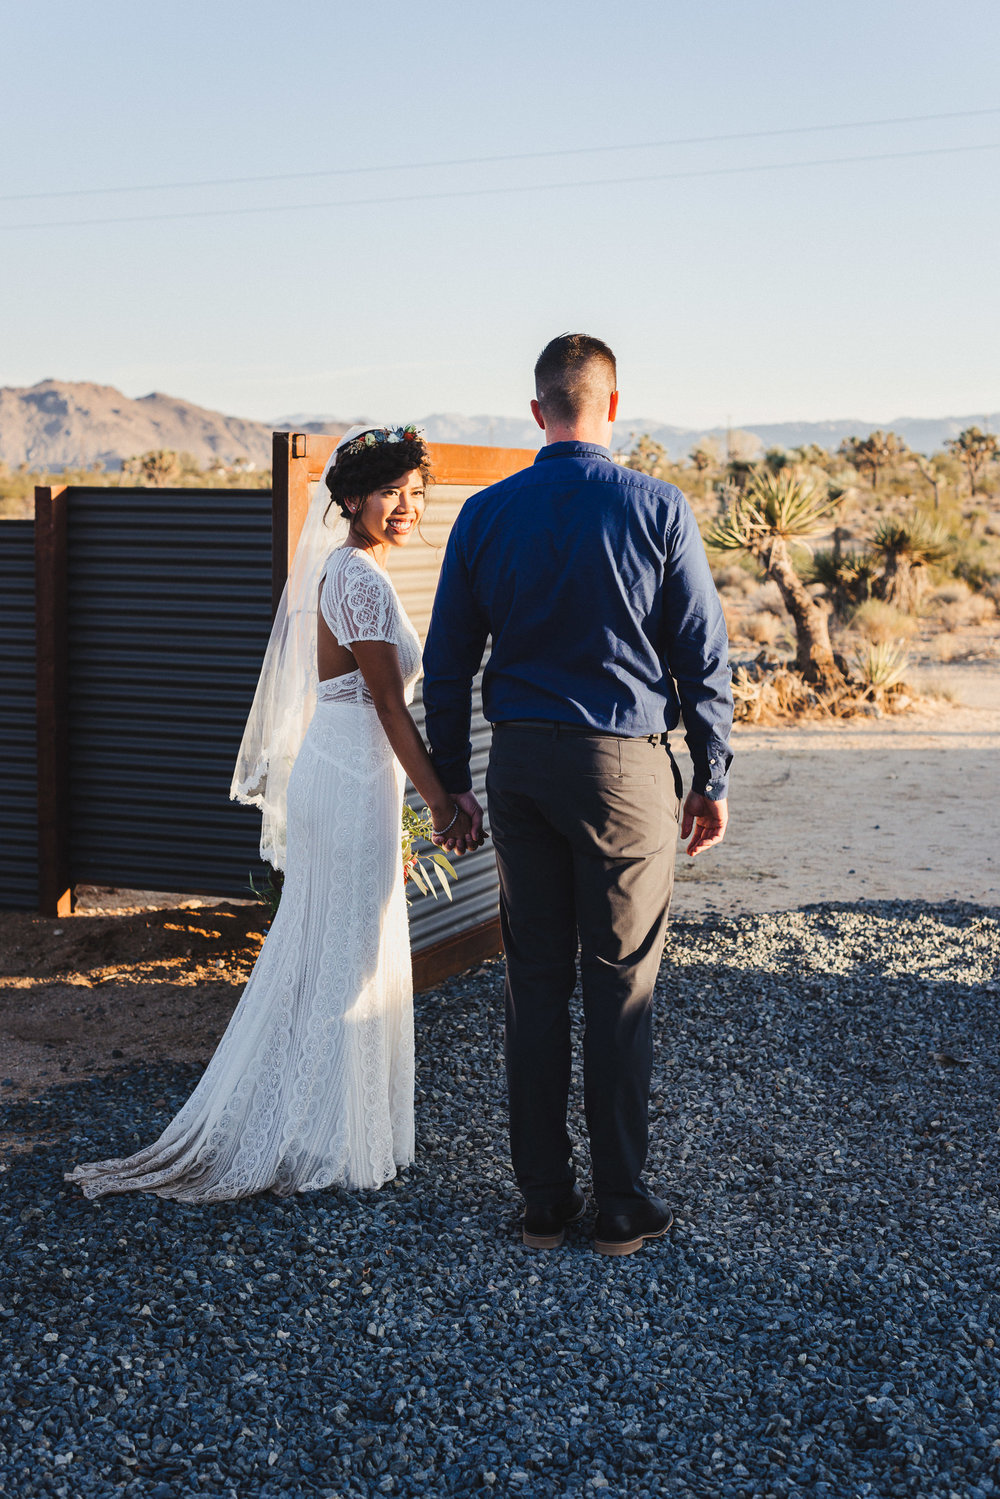 sJ + N - Joshua Tree, CA - 08 Bride + Groom-8.jpg